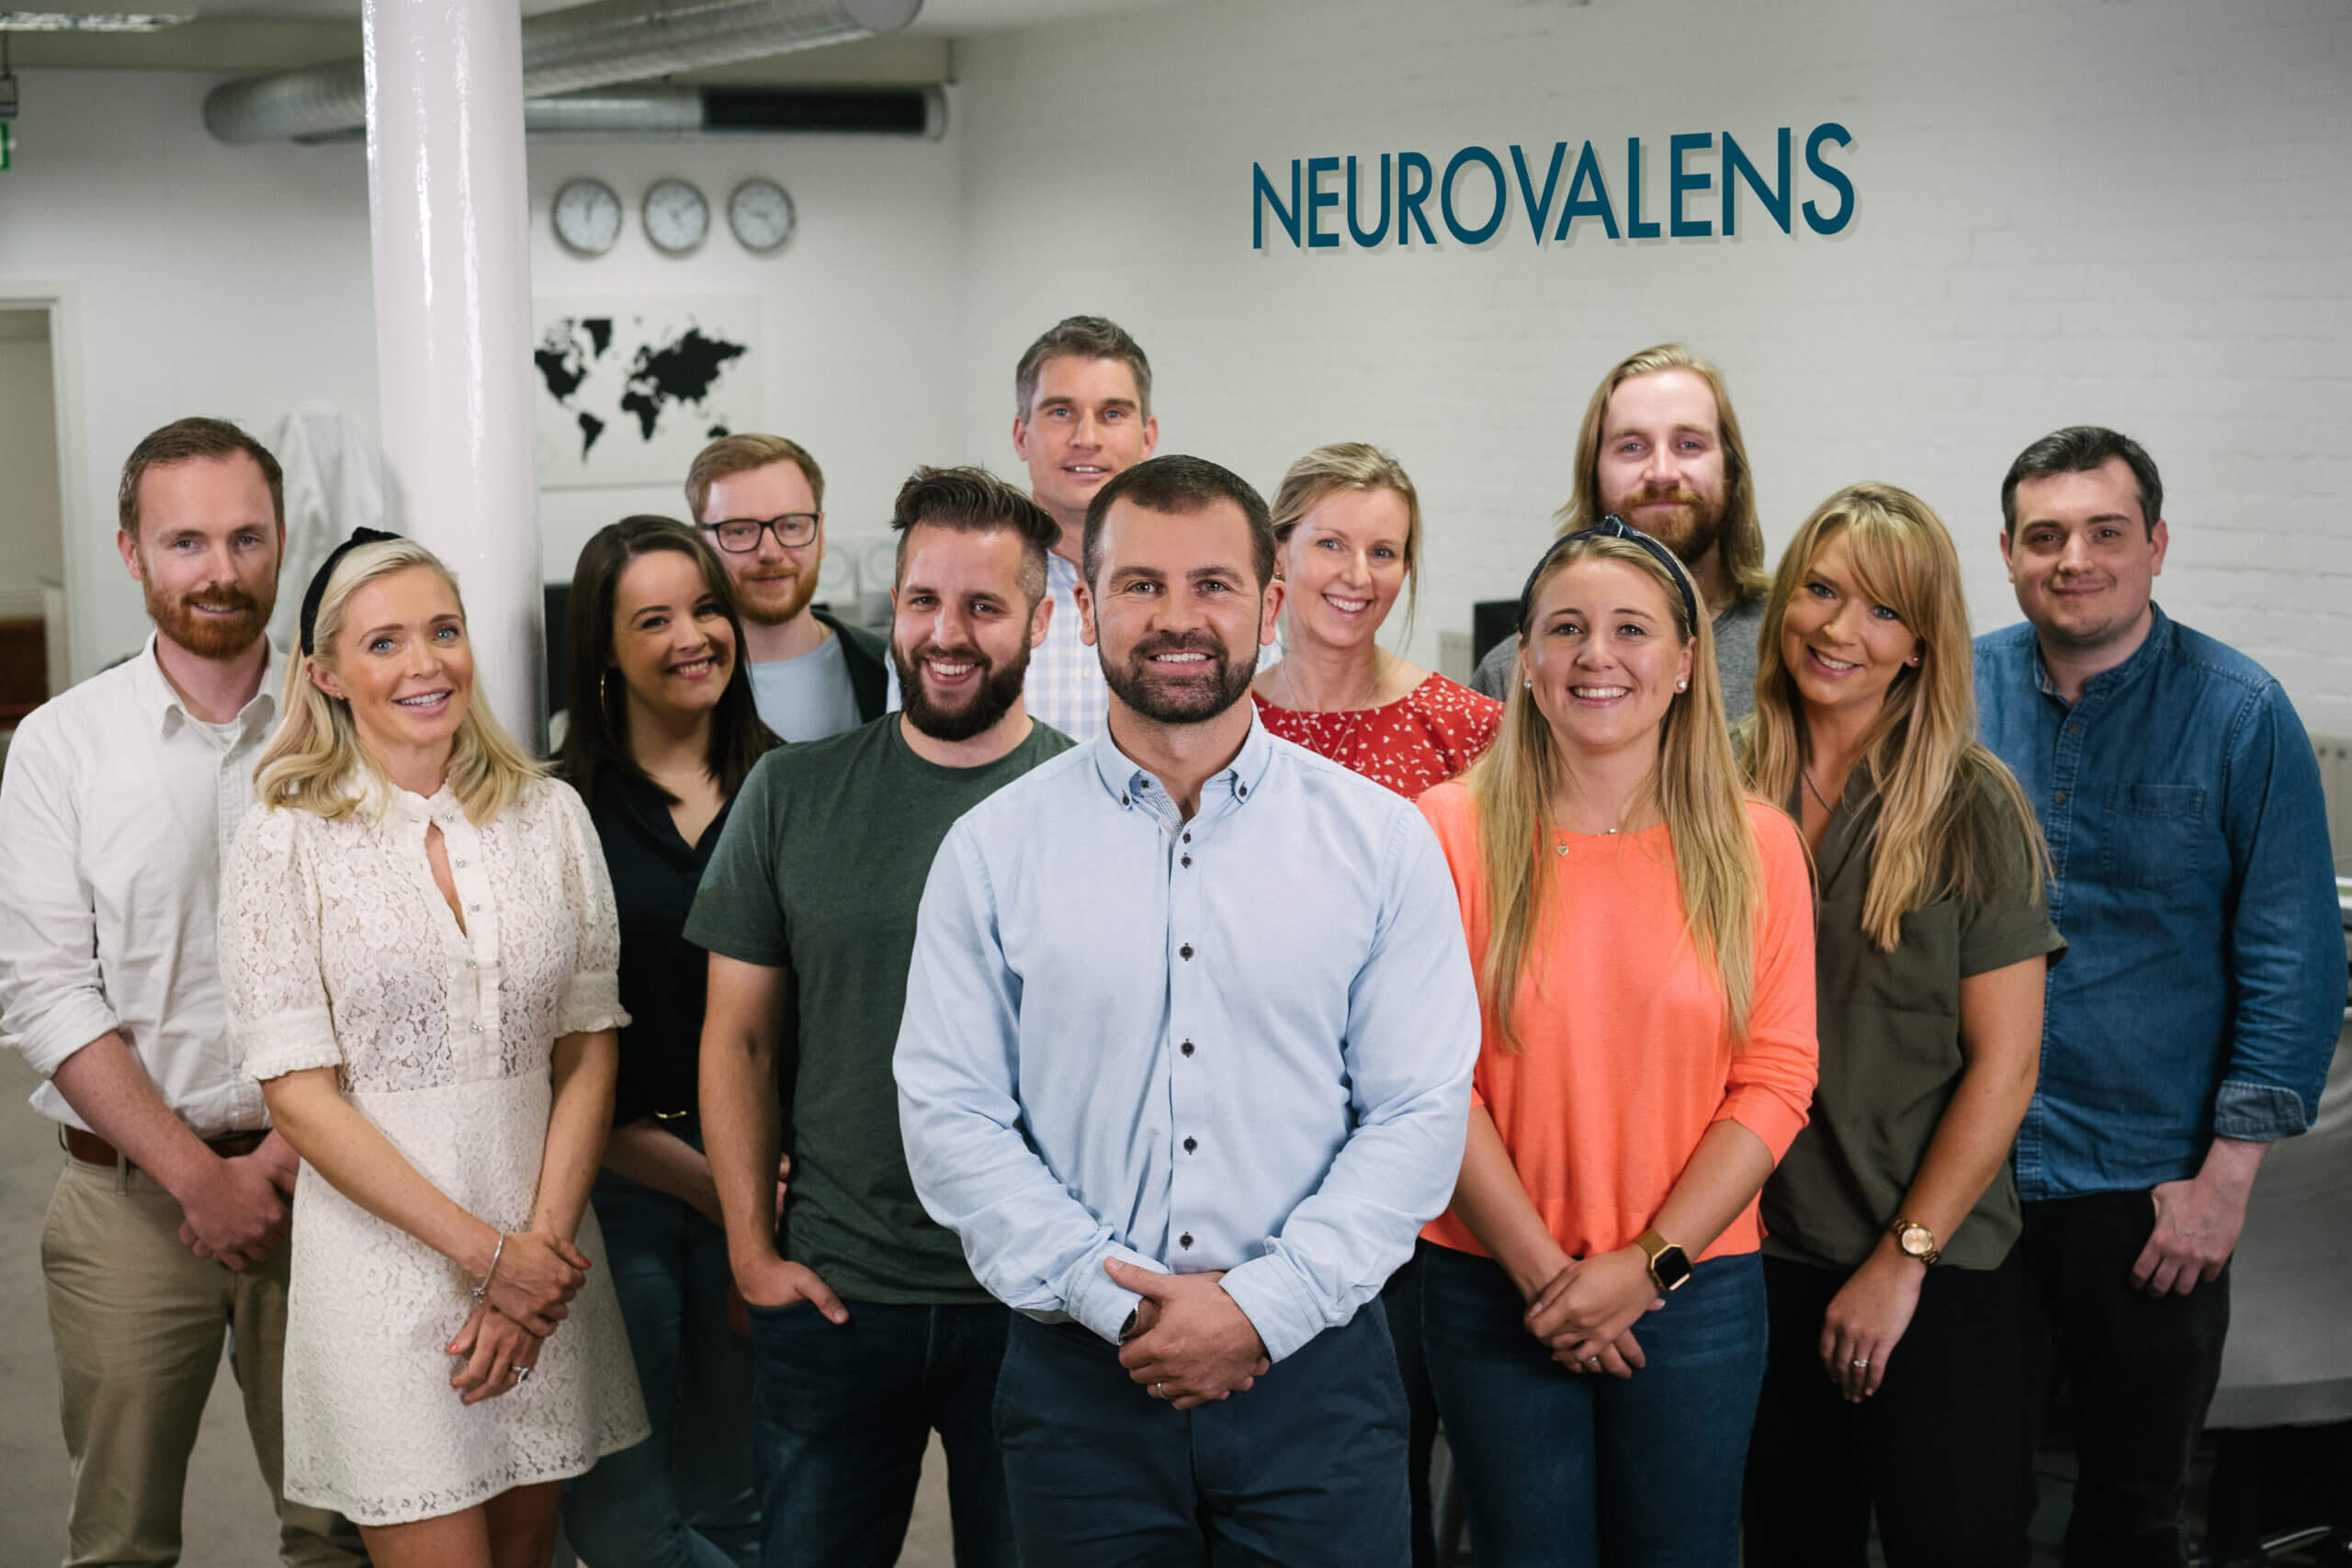 Founder's story: Jason McKeown – Neurovalens